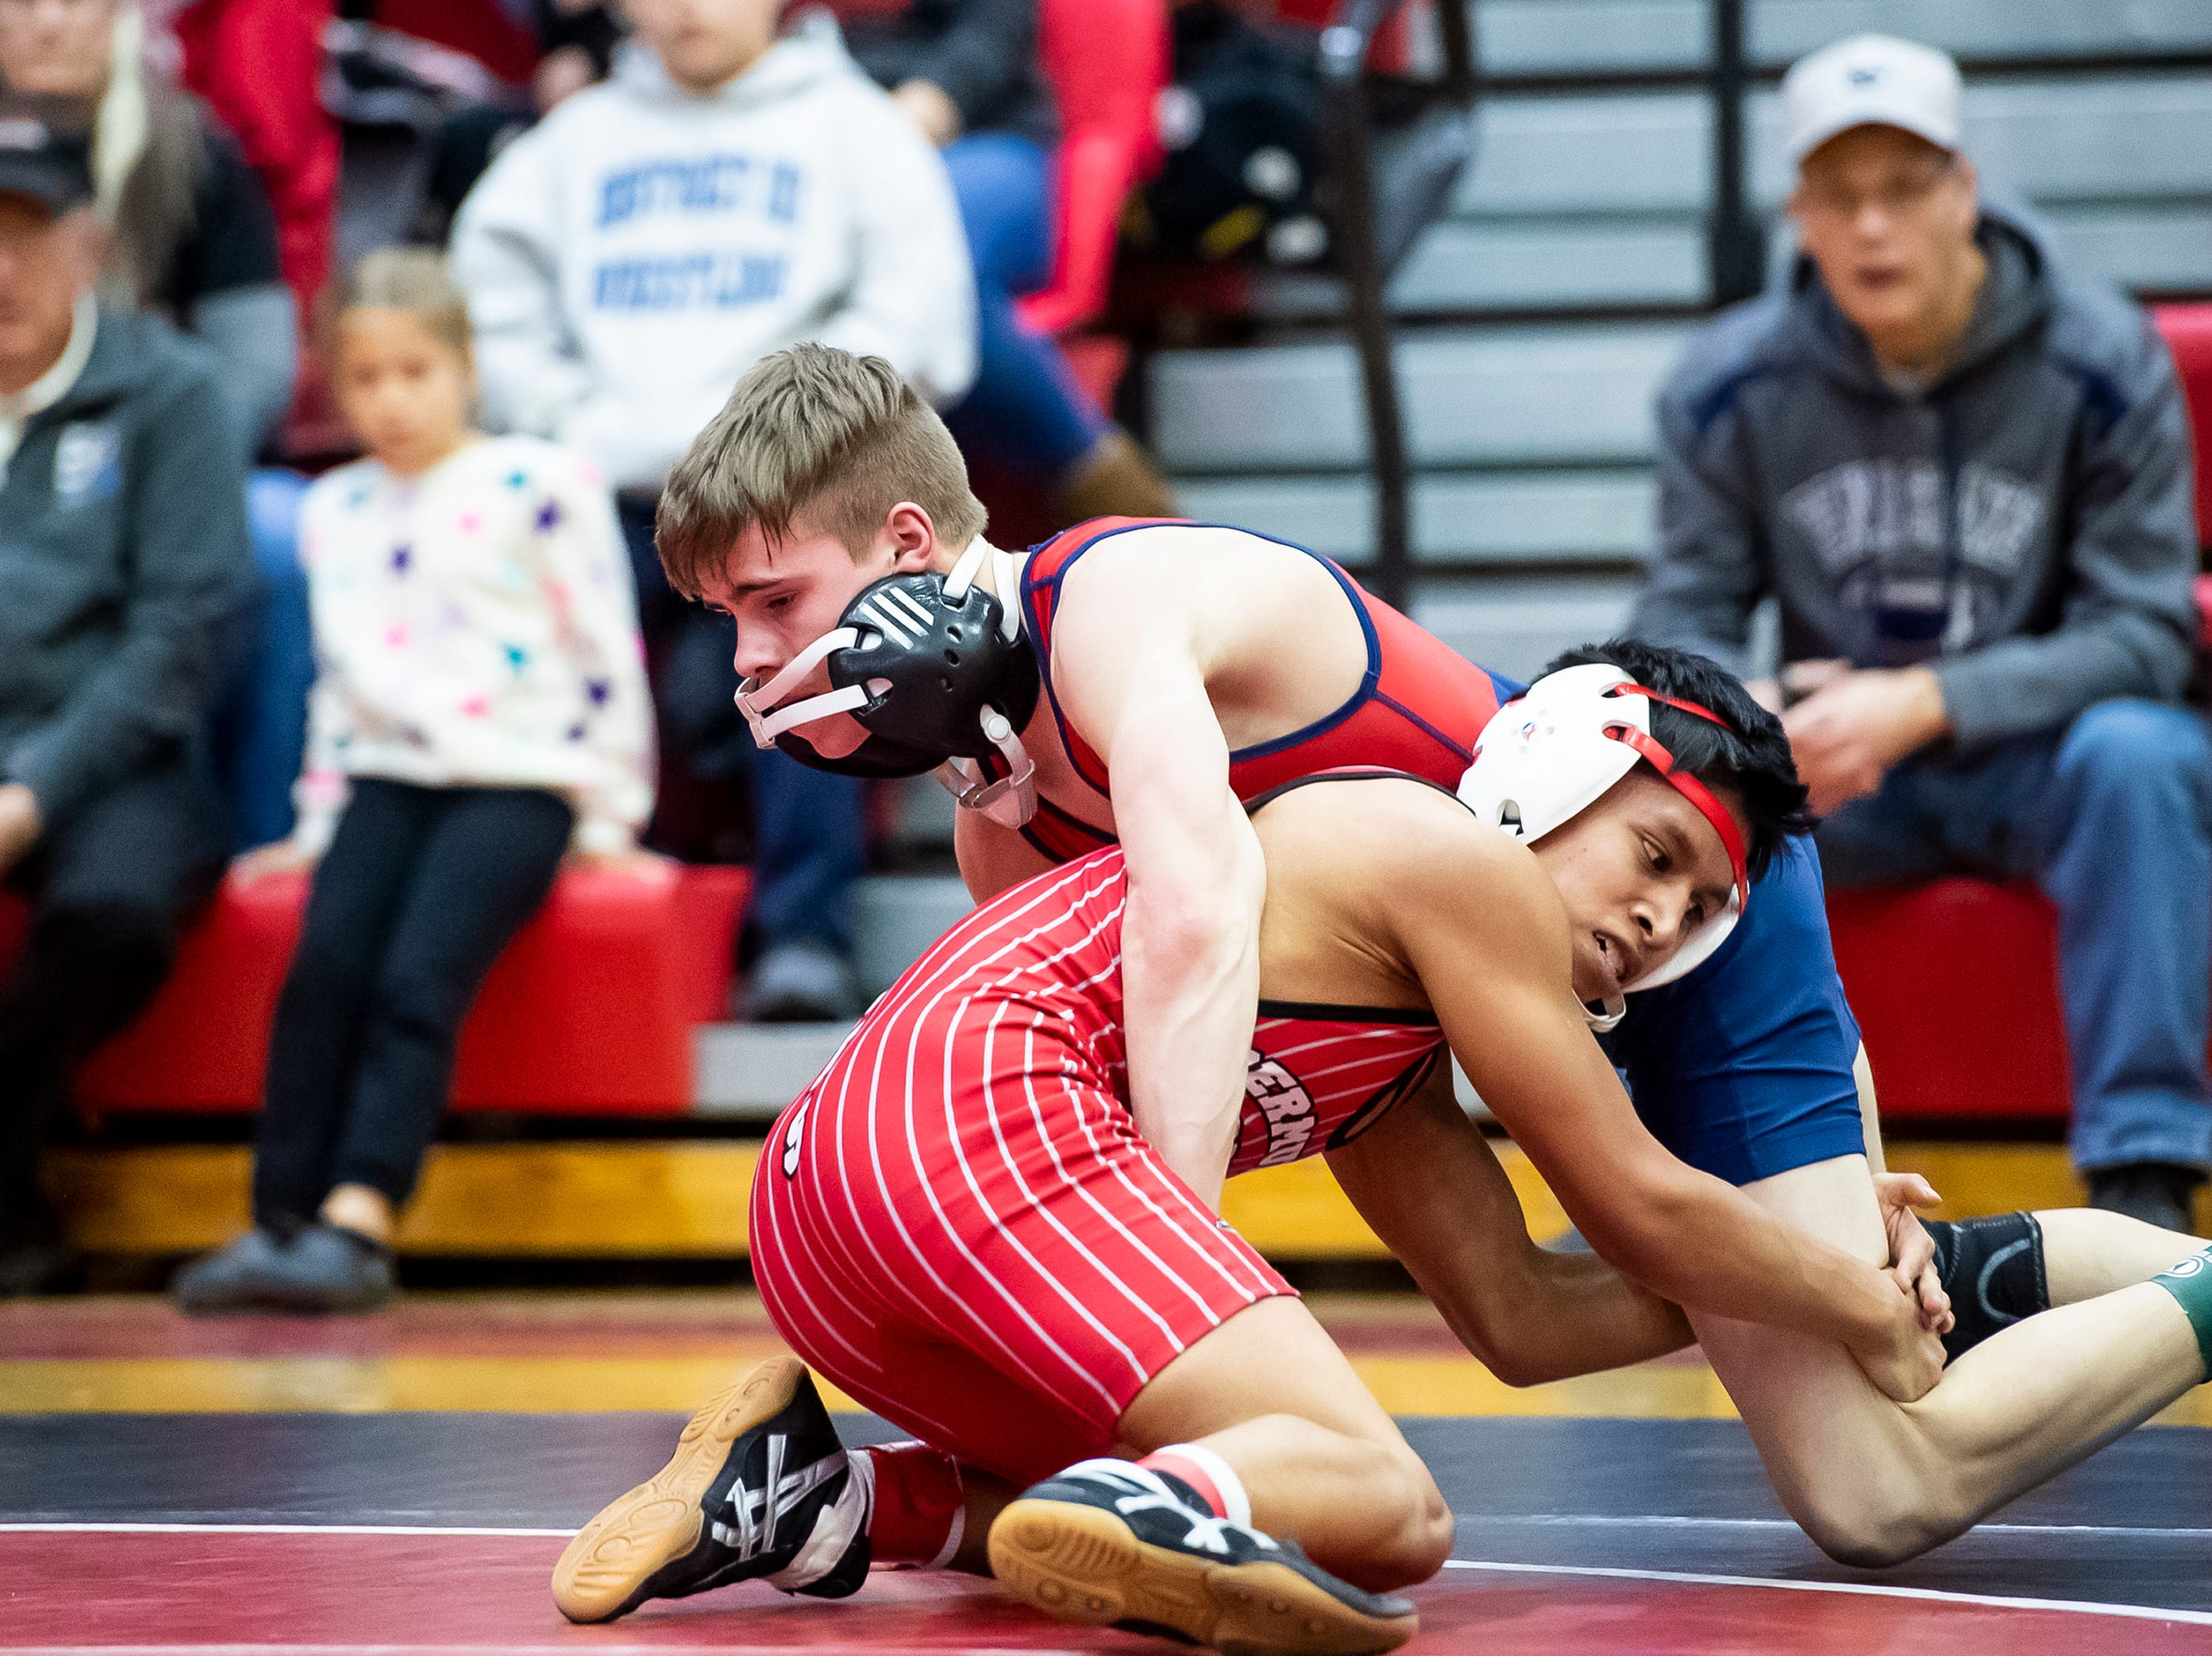 Bermudian Springs' Coby Johnston, bottom, wrestles Octorara's Connor Jeffries in the 106-pound bout during a PIAA District III 2A quarterfinal match at Cumberland Valley High School January 31, 2019. The Eagles beat Octorara 42-23.